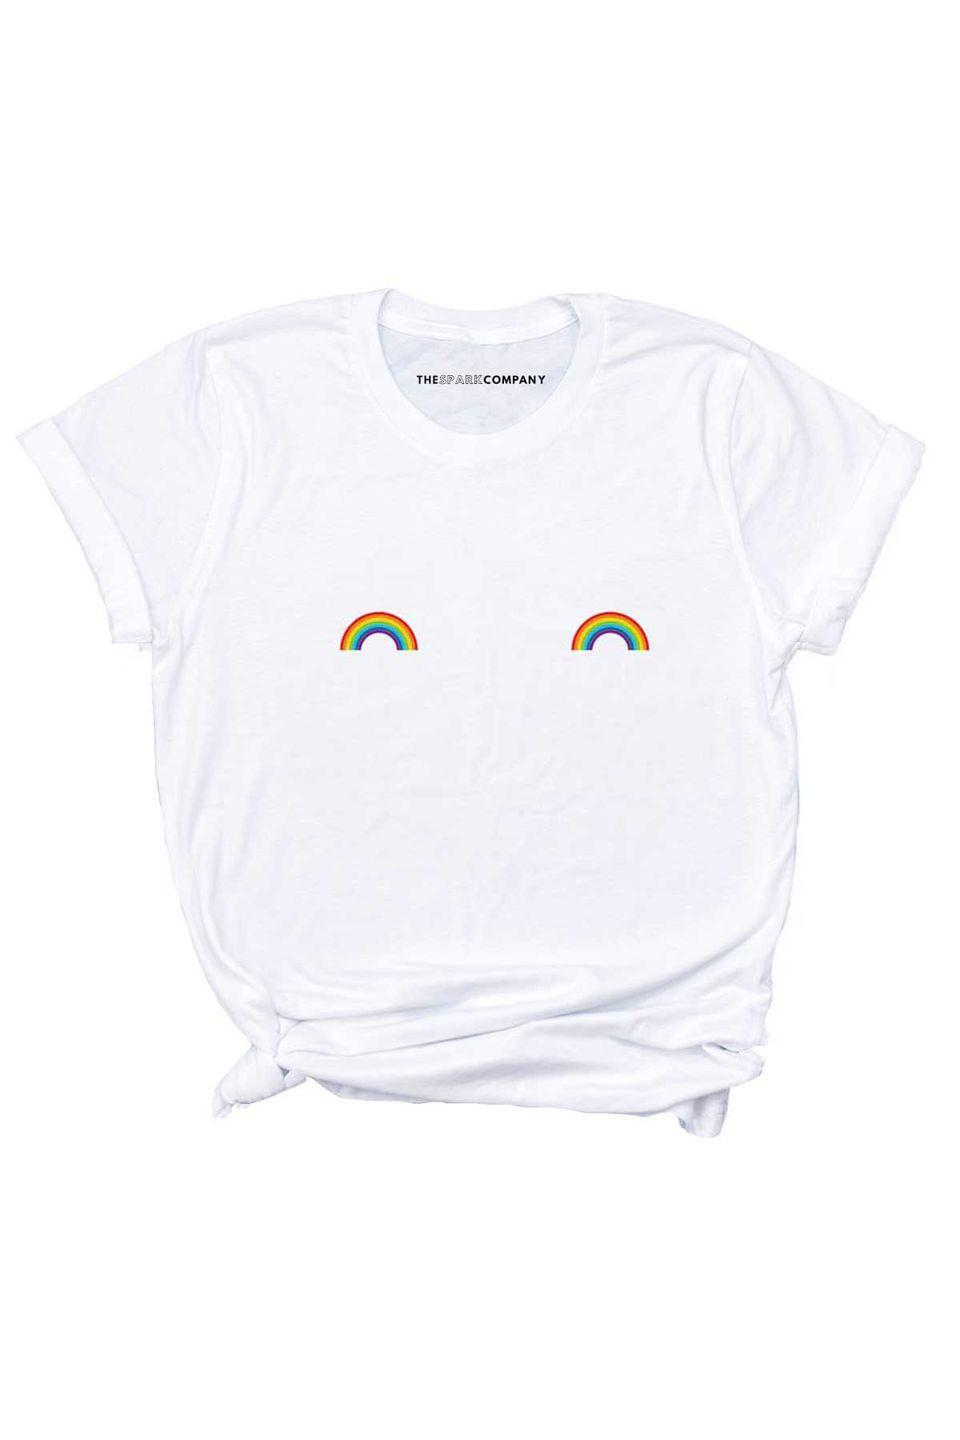 """<p><a class=""""link rapid-noclick-resp"""" href=""""https://go.redirectingat.com?id=127X1599956&url=https%3A%2F%2Fthespark.company%2Fcollections%2Flgbt-pride-t-shirts%2Fproducts%2Frainbow-tee&sref=https%3A%2F%2Fwww.harpersbazaar.com%2Fuk%2Ffashion%2Fg28117677%2Fpride-fashion%2F"""" rel=""""nofollow noopener"""" target=""""_blank"""" data-ylk=""""slk:SHOP NOW"""">SHOP NOW</a></p><p>The Spark Company aims to spread the word that everyone should be treated equally, regardless of size, gender, sexuality or ethnicity. Its Pride Rainbow Nipple range, designed to free the nipple, is all about being your true-self right where everyone can see it.</p><p>Nipple rainbow T-shirt, £19.95, The Spark Company</p>"""